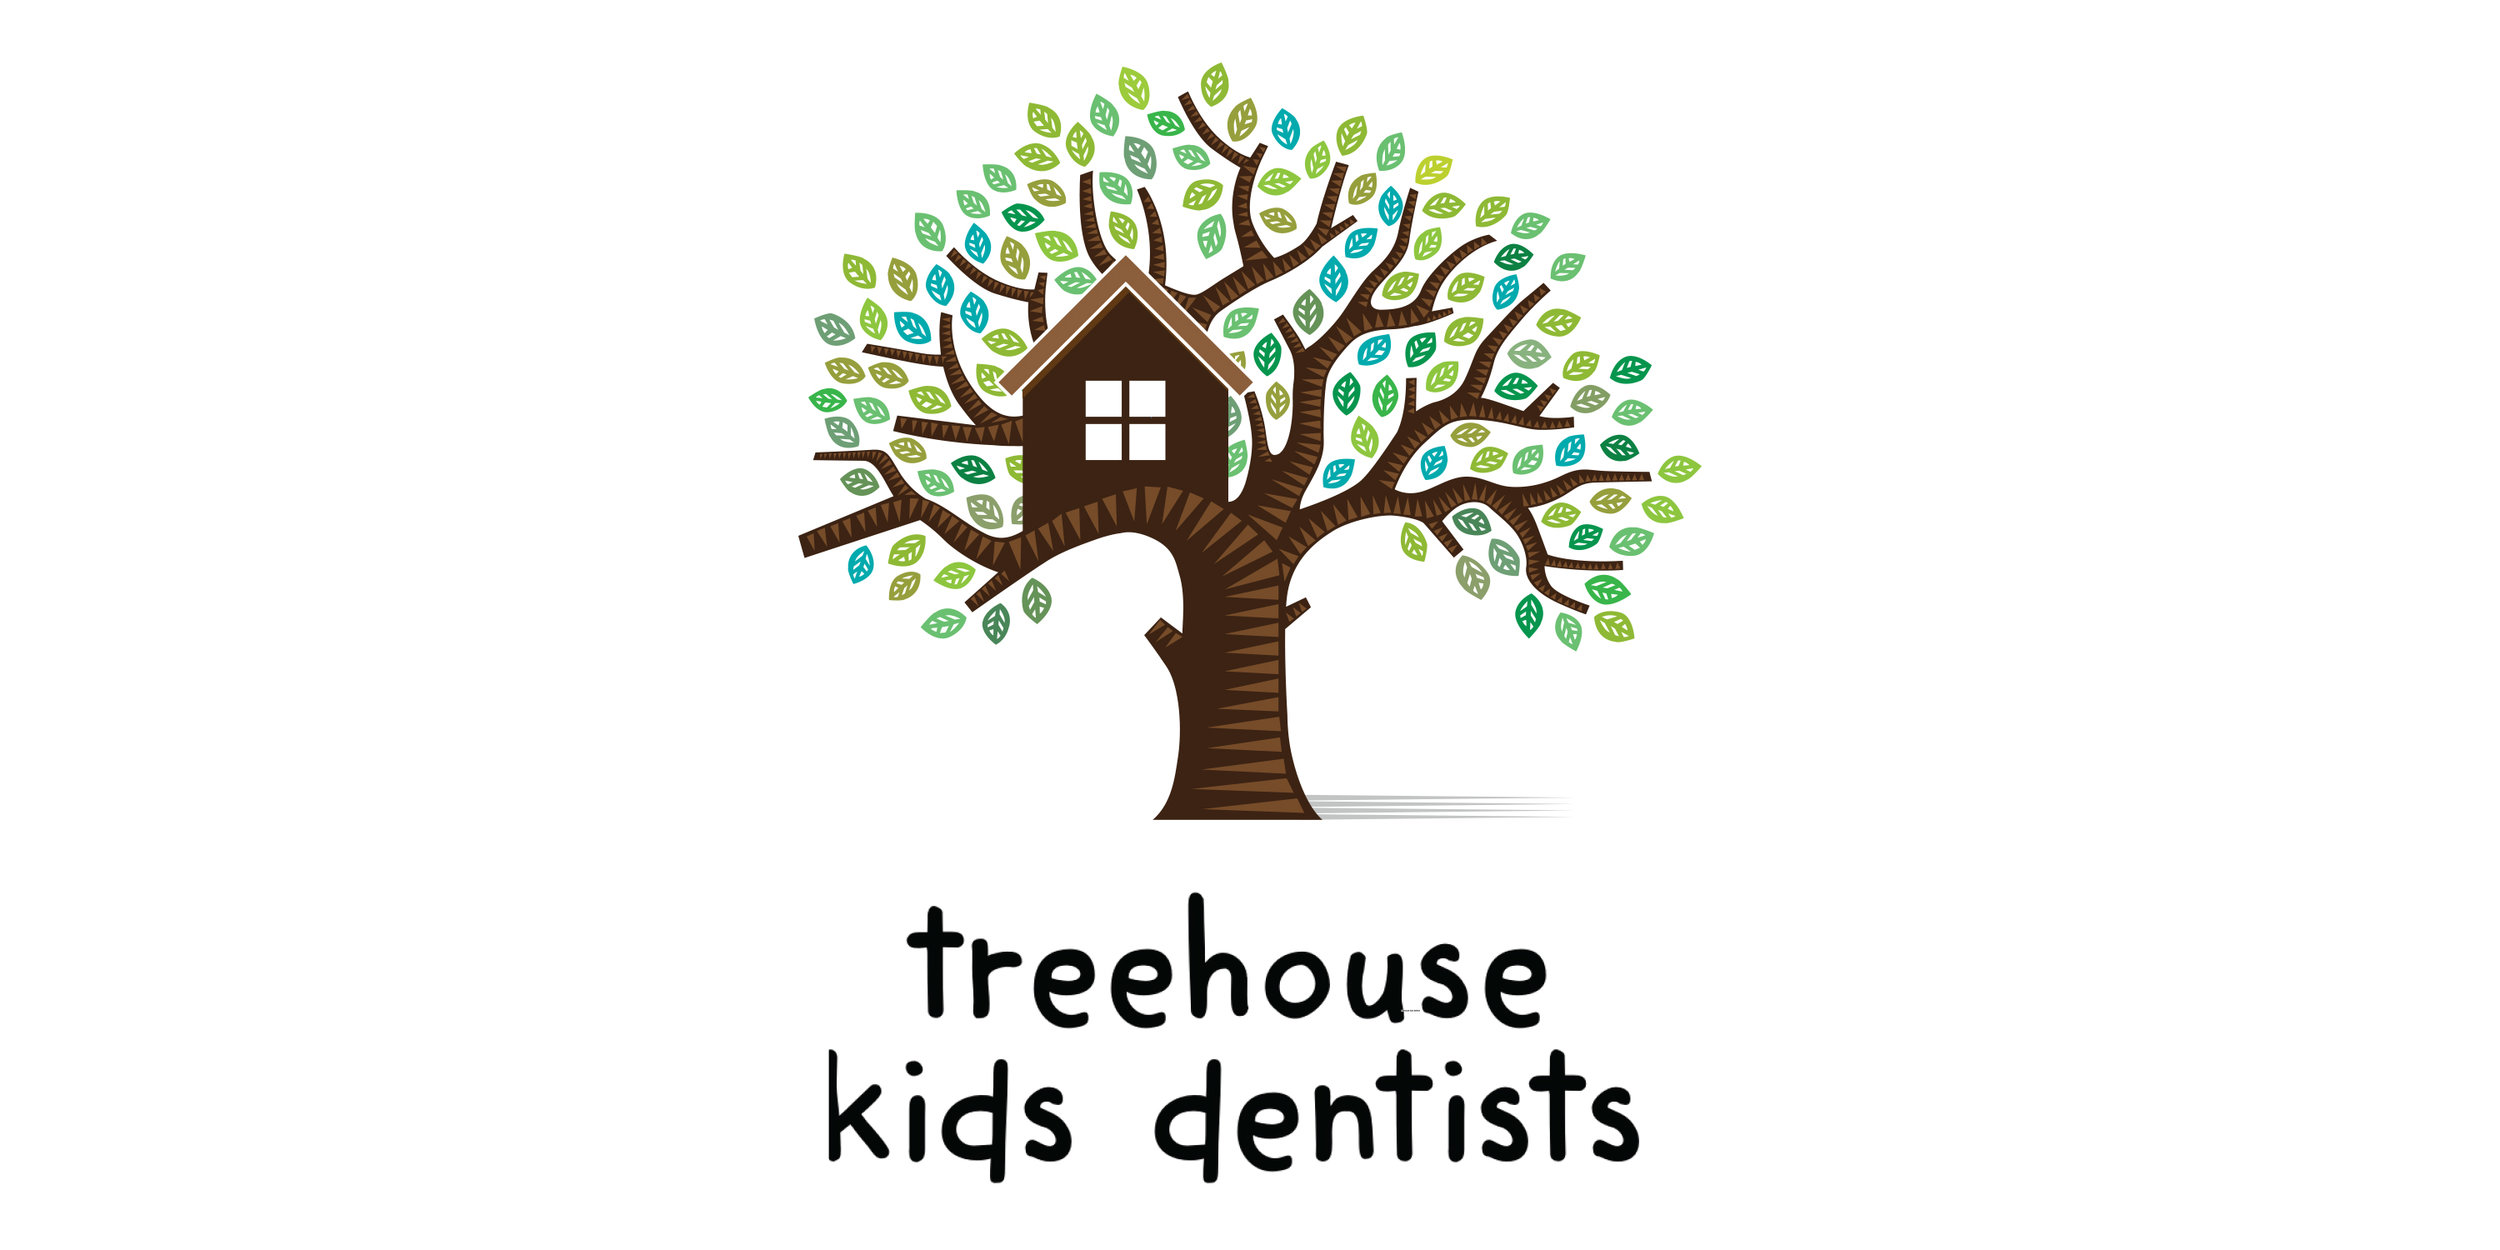 Web_Samples_Treehouse_Logos6.jpg